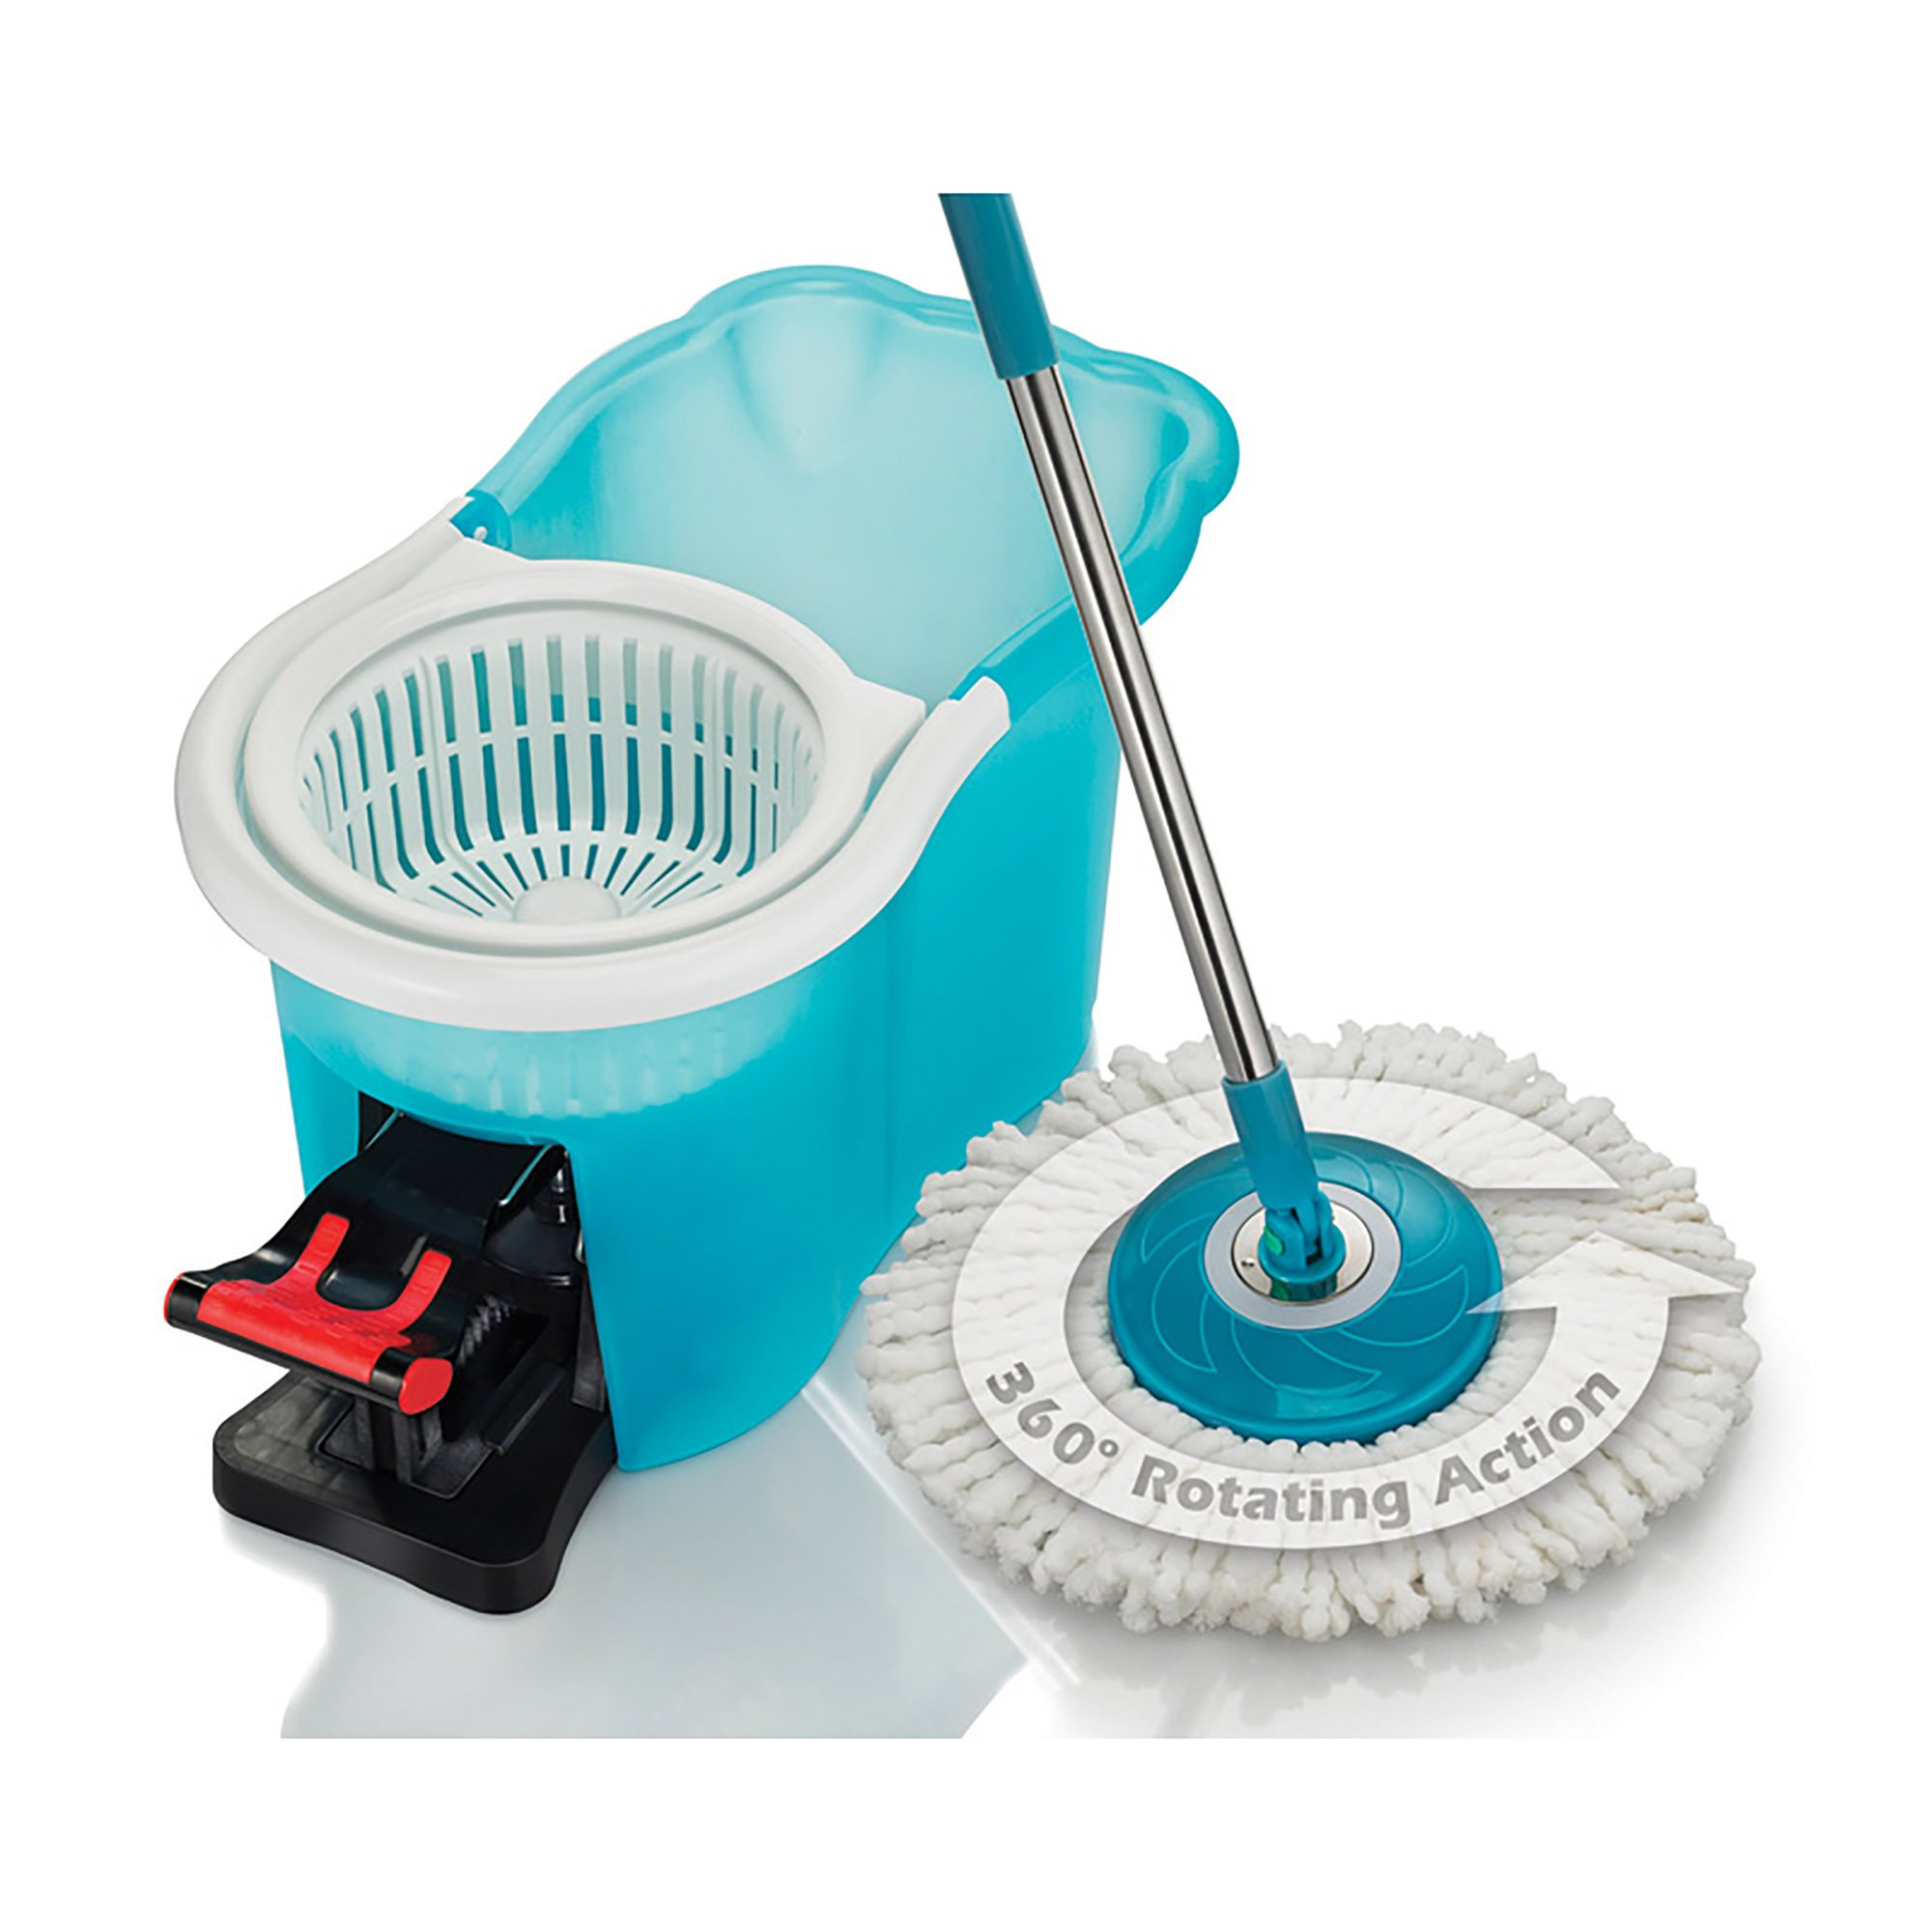 Hurricane Spin Mop Home Cleaning System by BulbHead, Floor Mop with Bucket Hardwood Floor Cleaner by Hurricane